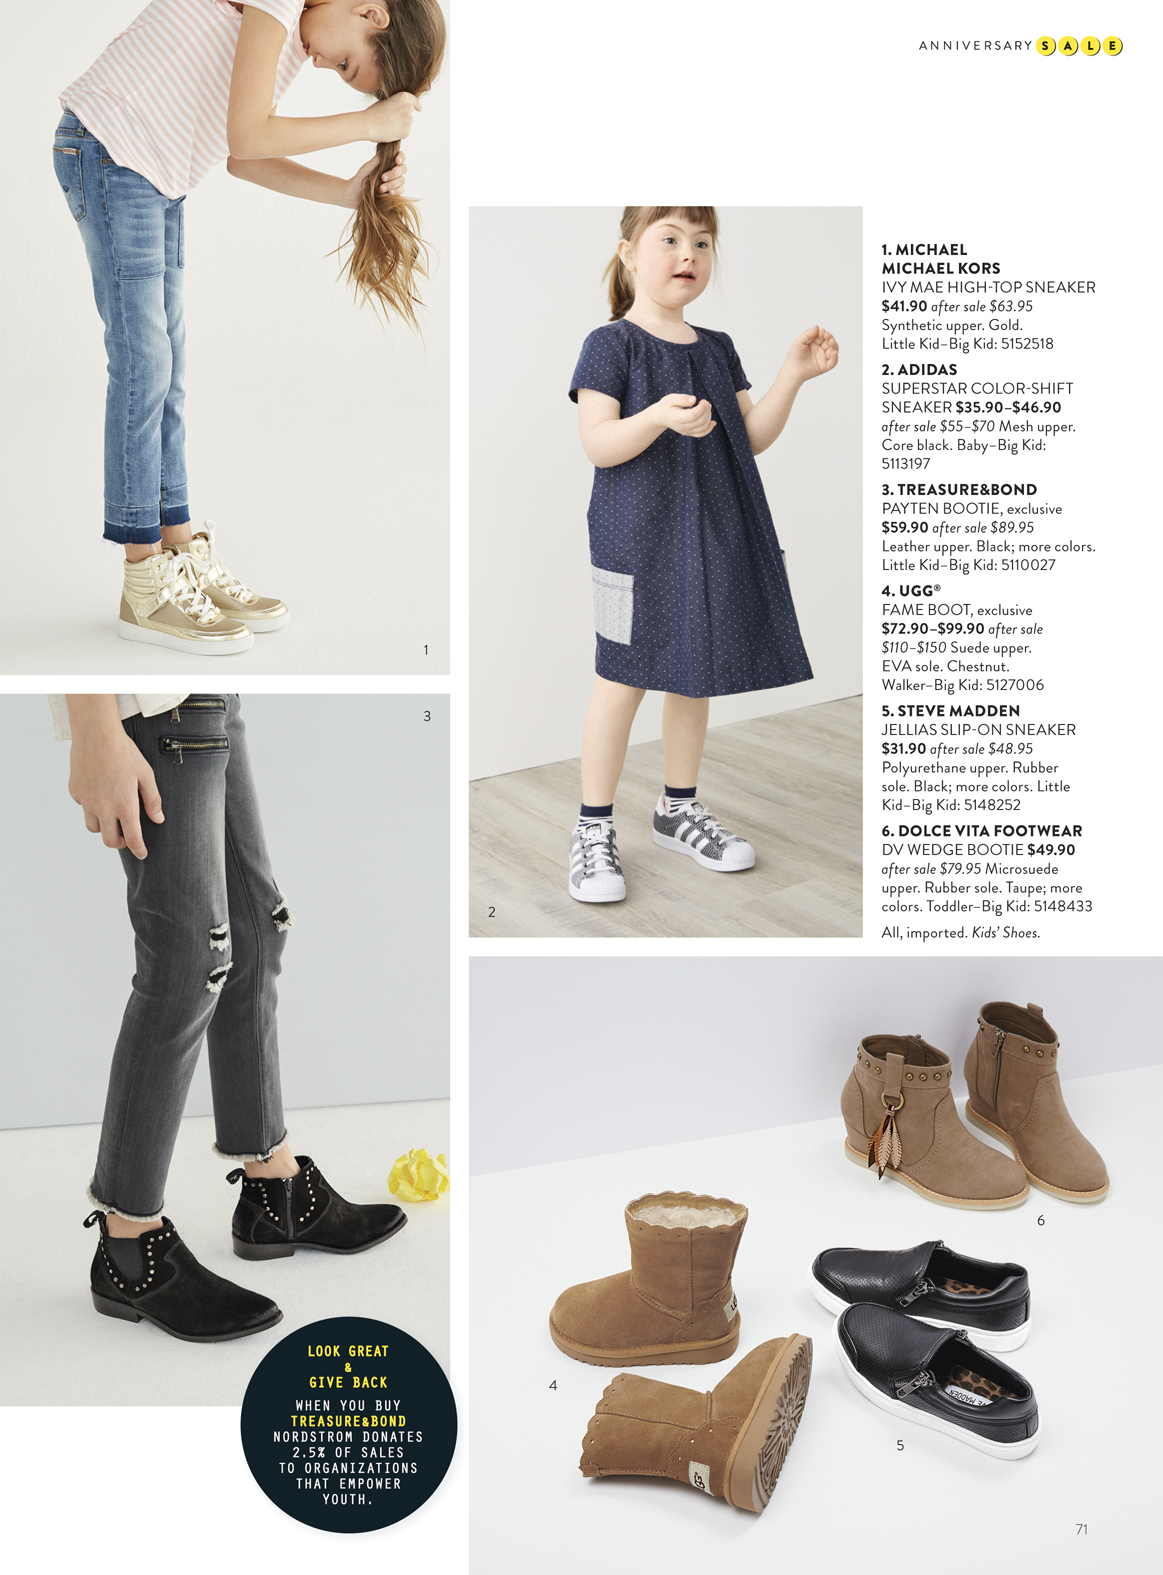 Models with Disabilities - Press Room - Nordstrom.com